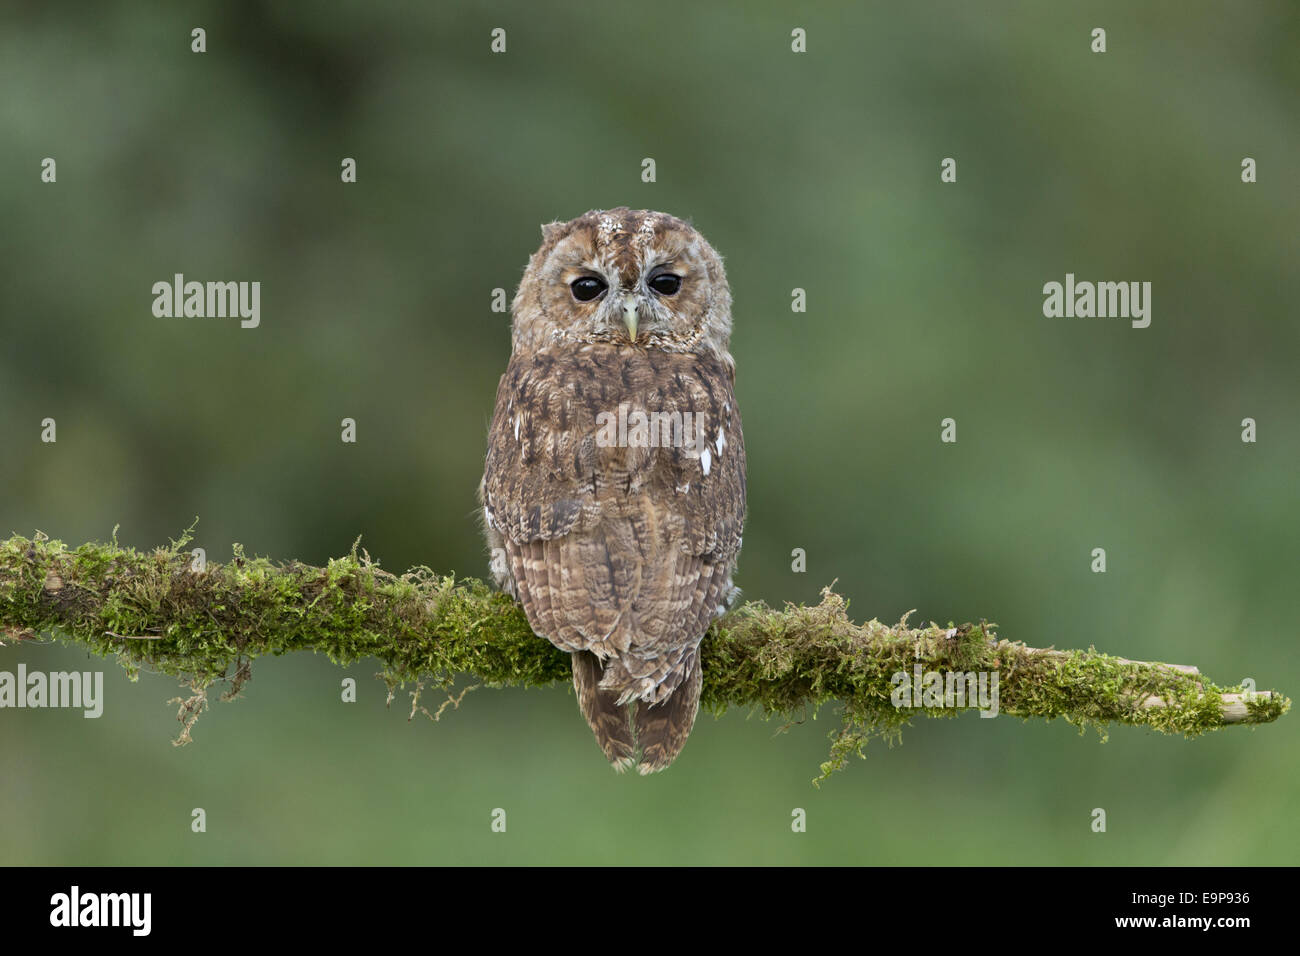 Tawny Owl (Strix aluco) adult, with head turned looking over shoulders, perched on mossy branch, September (captive) - Stock Image